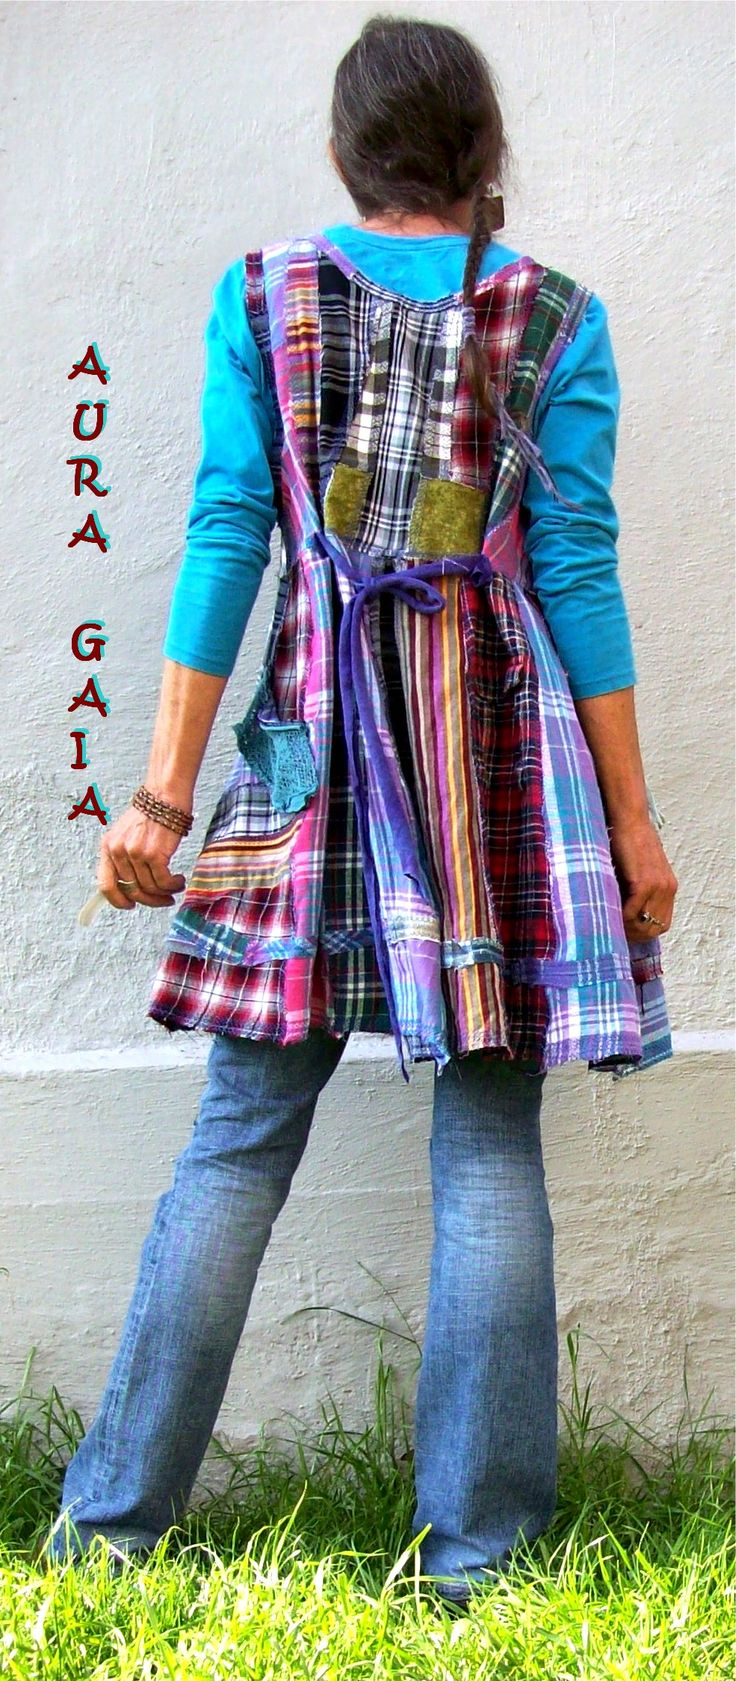 AuraGaia ~ Flannel Layering Tunic Top Dress Upcycled Poorgirl fits S-L; 3 pockets; patchwork ;rawedged tattered stitched madly seams; adorned with overdyed vintage doily, snippets of tulle, lace, buttons, beads. plaids & stripe in purple, pink, green, black, tan, turquoise, moss, burgundy, marigold, brown, white, red,gray. Hand stitching. empire waist. back ties are hemp jersey knit. loose comfy fit